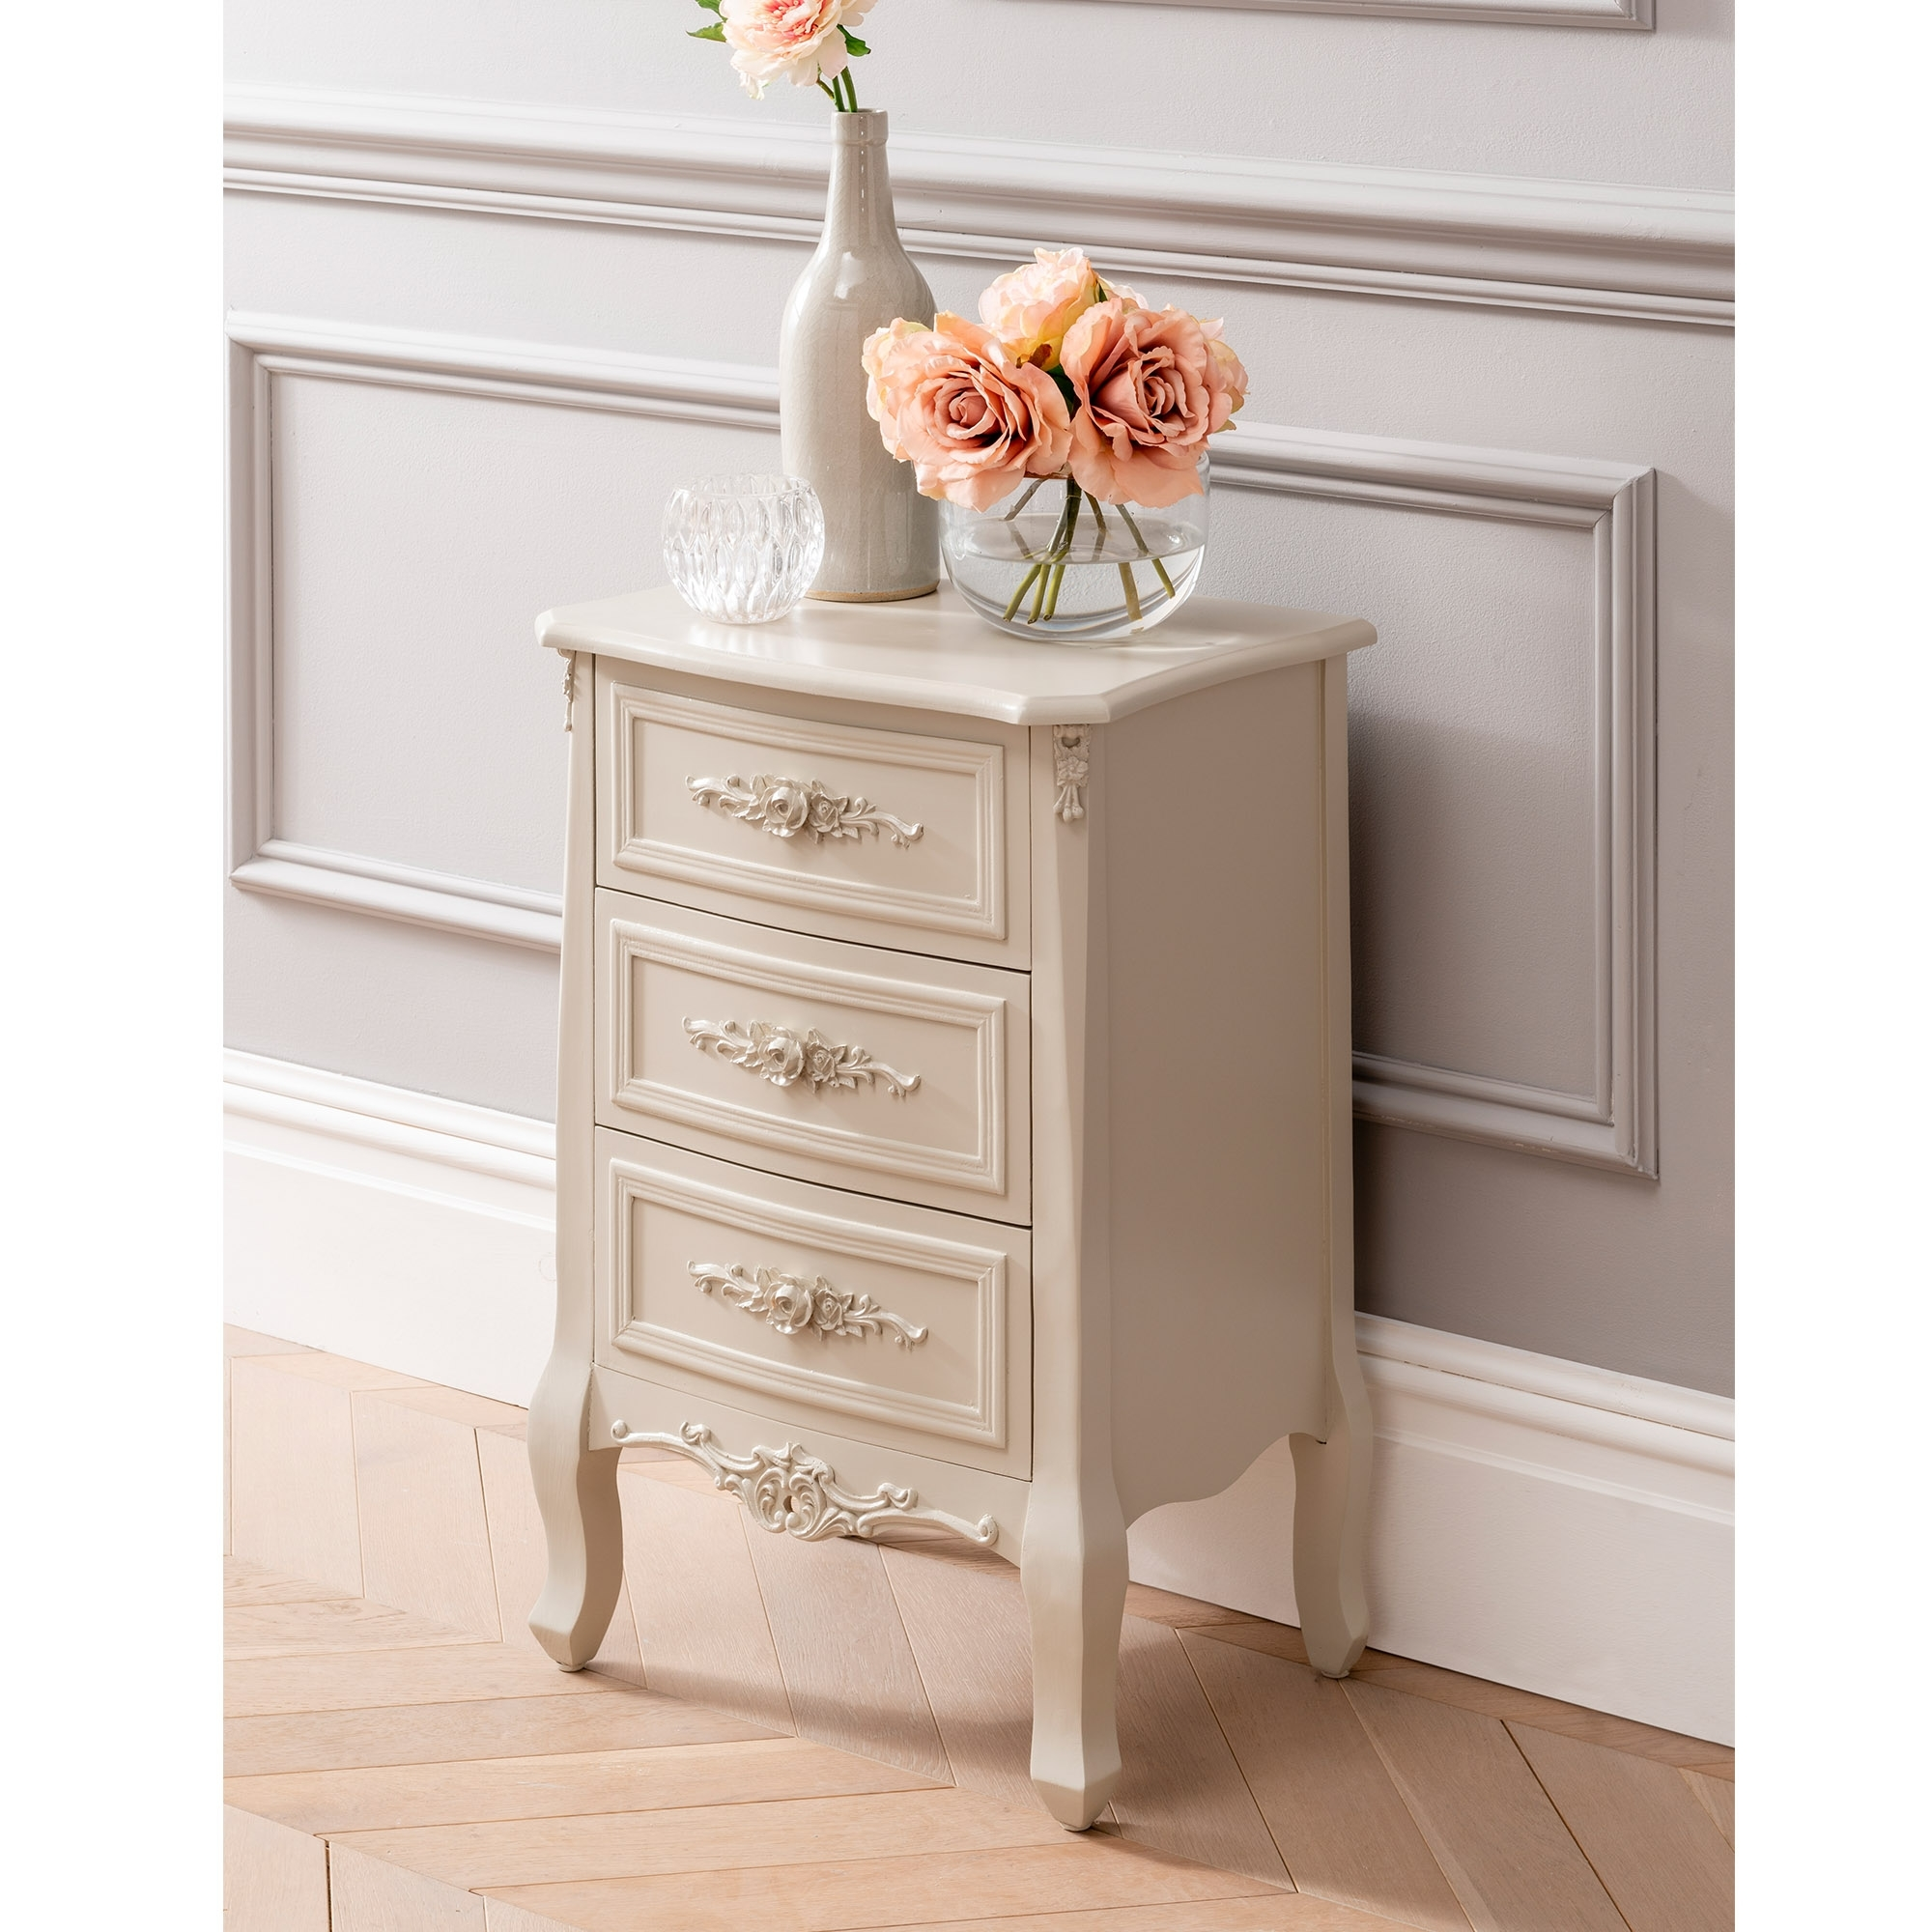 Antique French Style Bedside Table With Floral Handles Bedroom